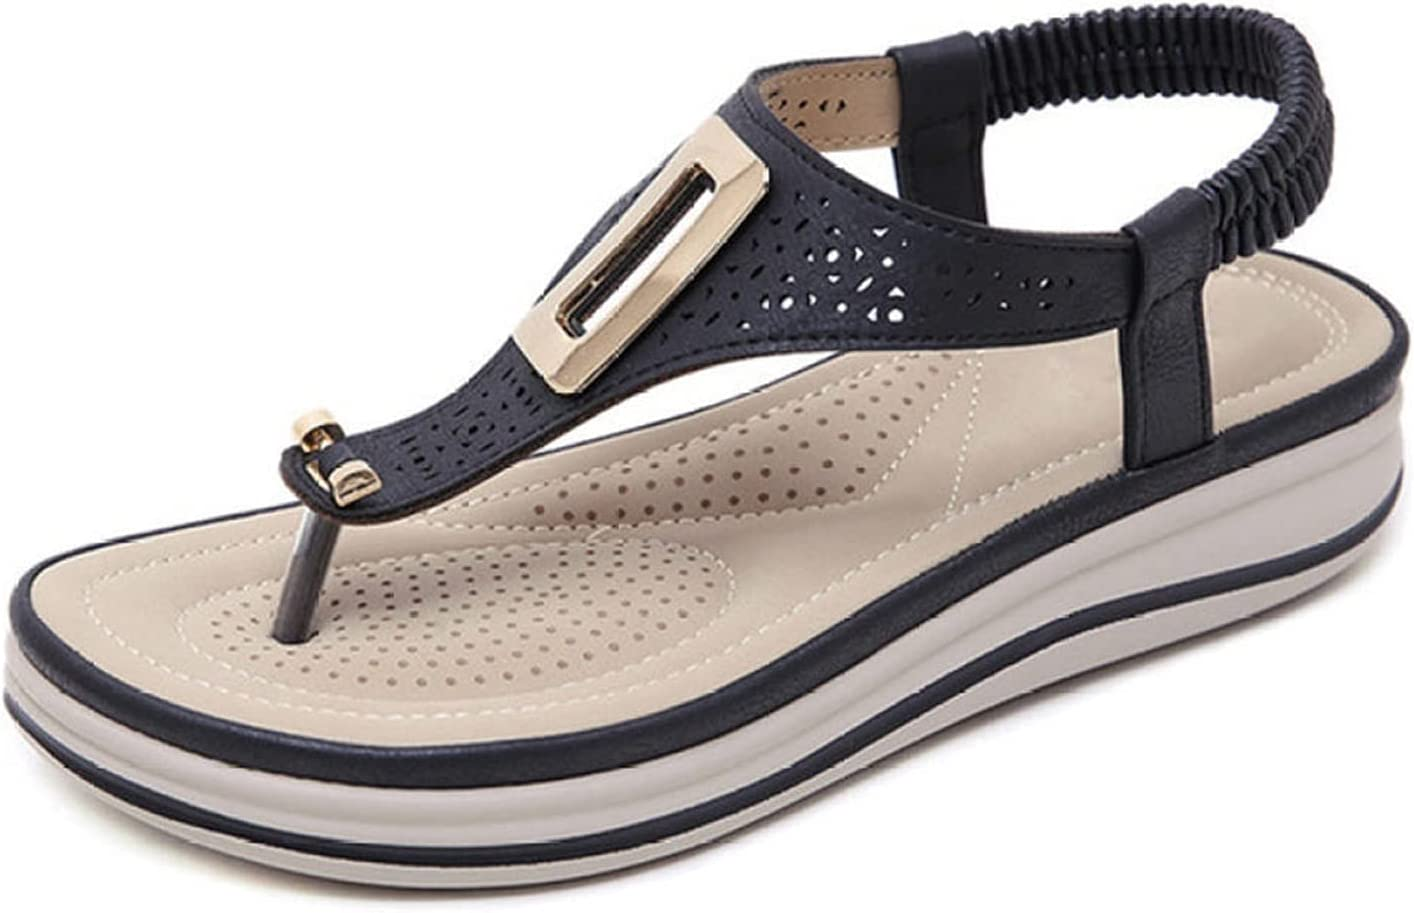 BAIMENGLONG specialty SEAL limited product shop Sandals Ladies Fashion Leather Summer Metal